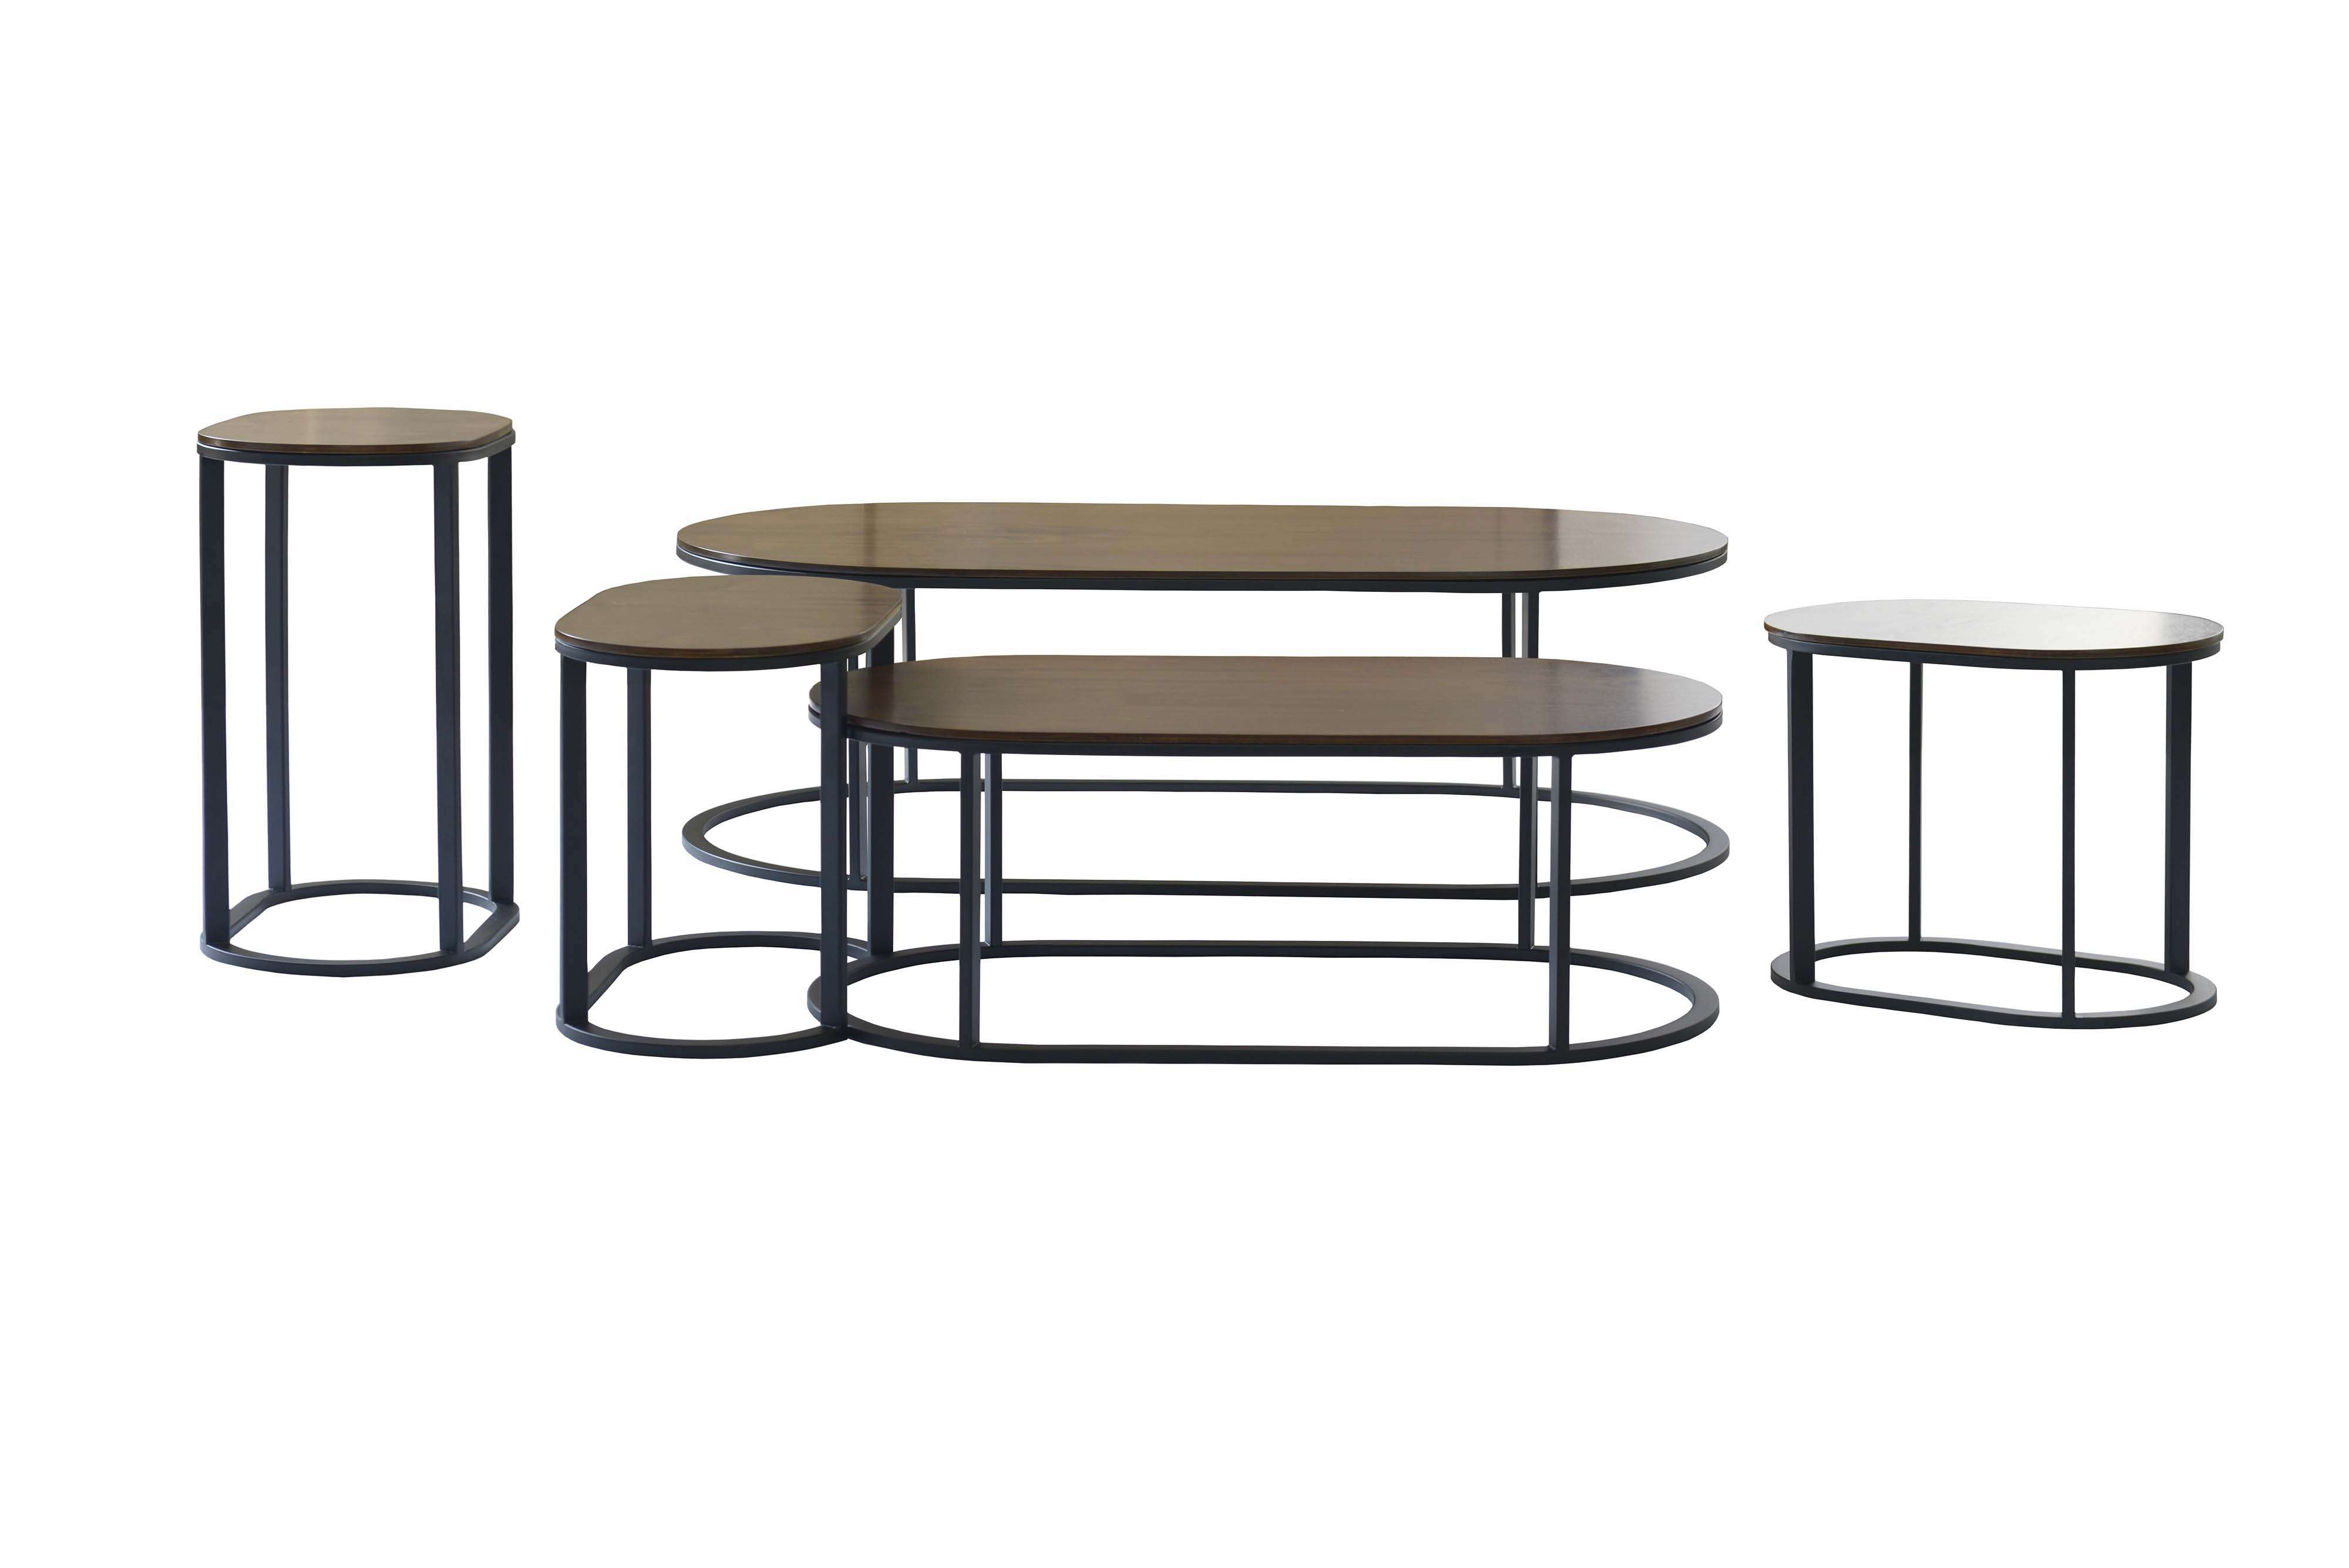 Torino – Nathan Anthony Furniture Regarding Most Current Torino Coffee Tables (View 16 of 20)